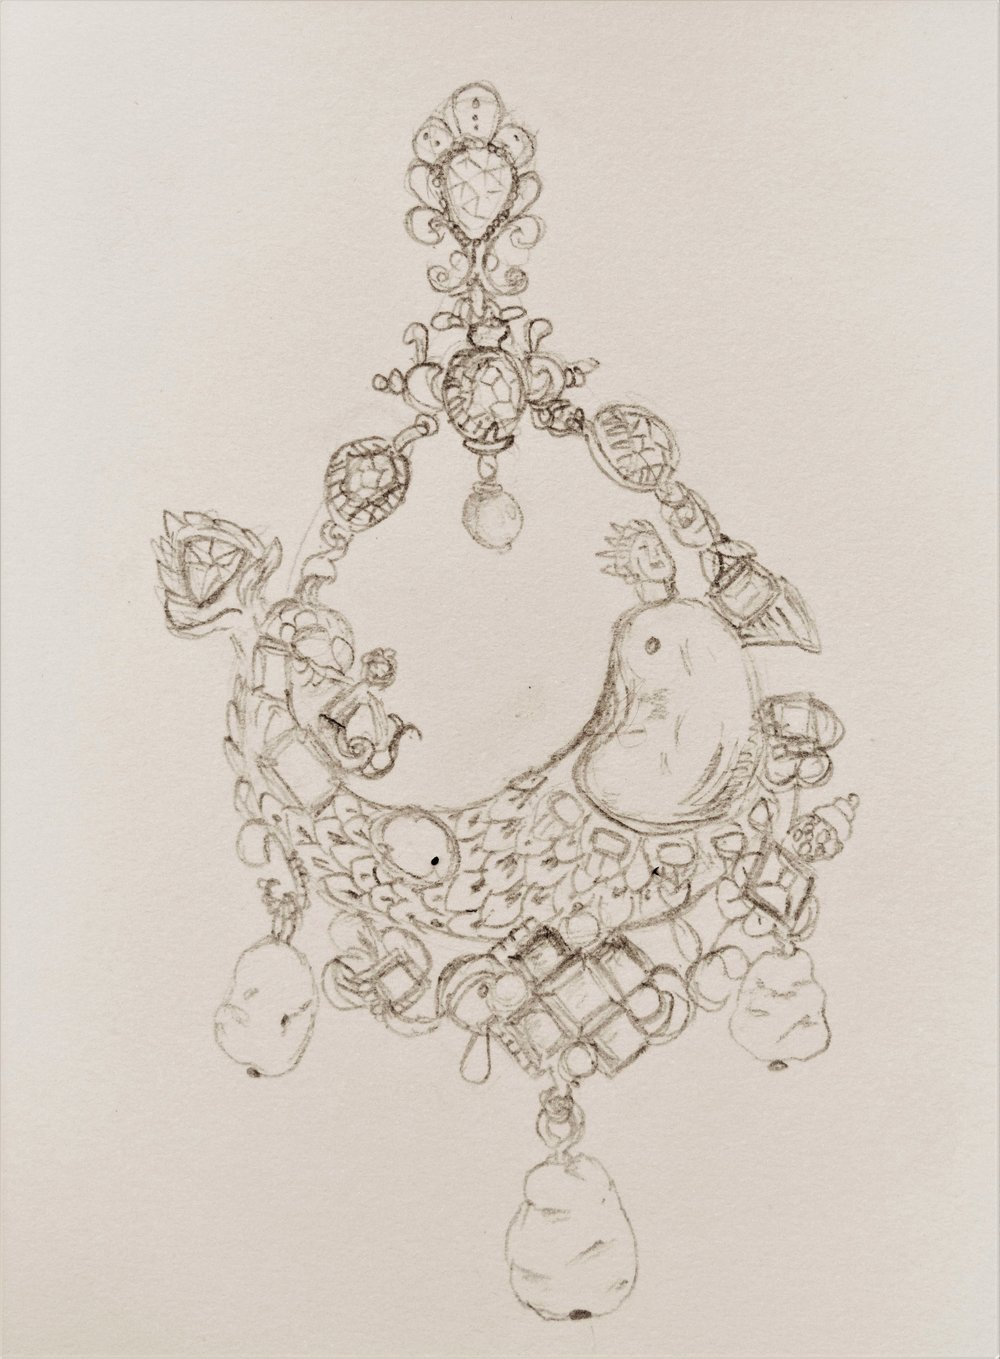 Sketch of pendant detail